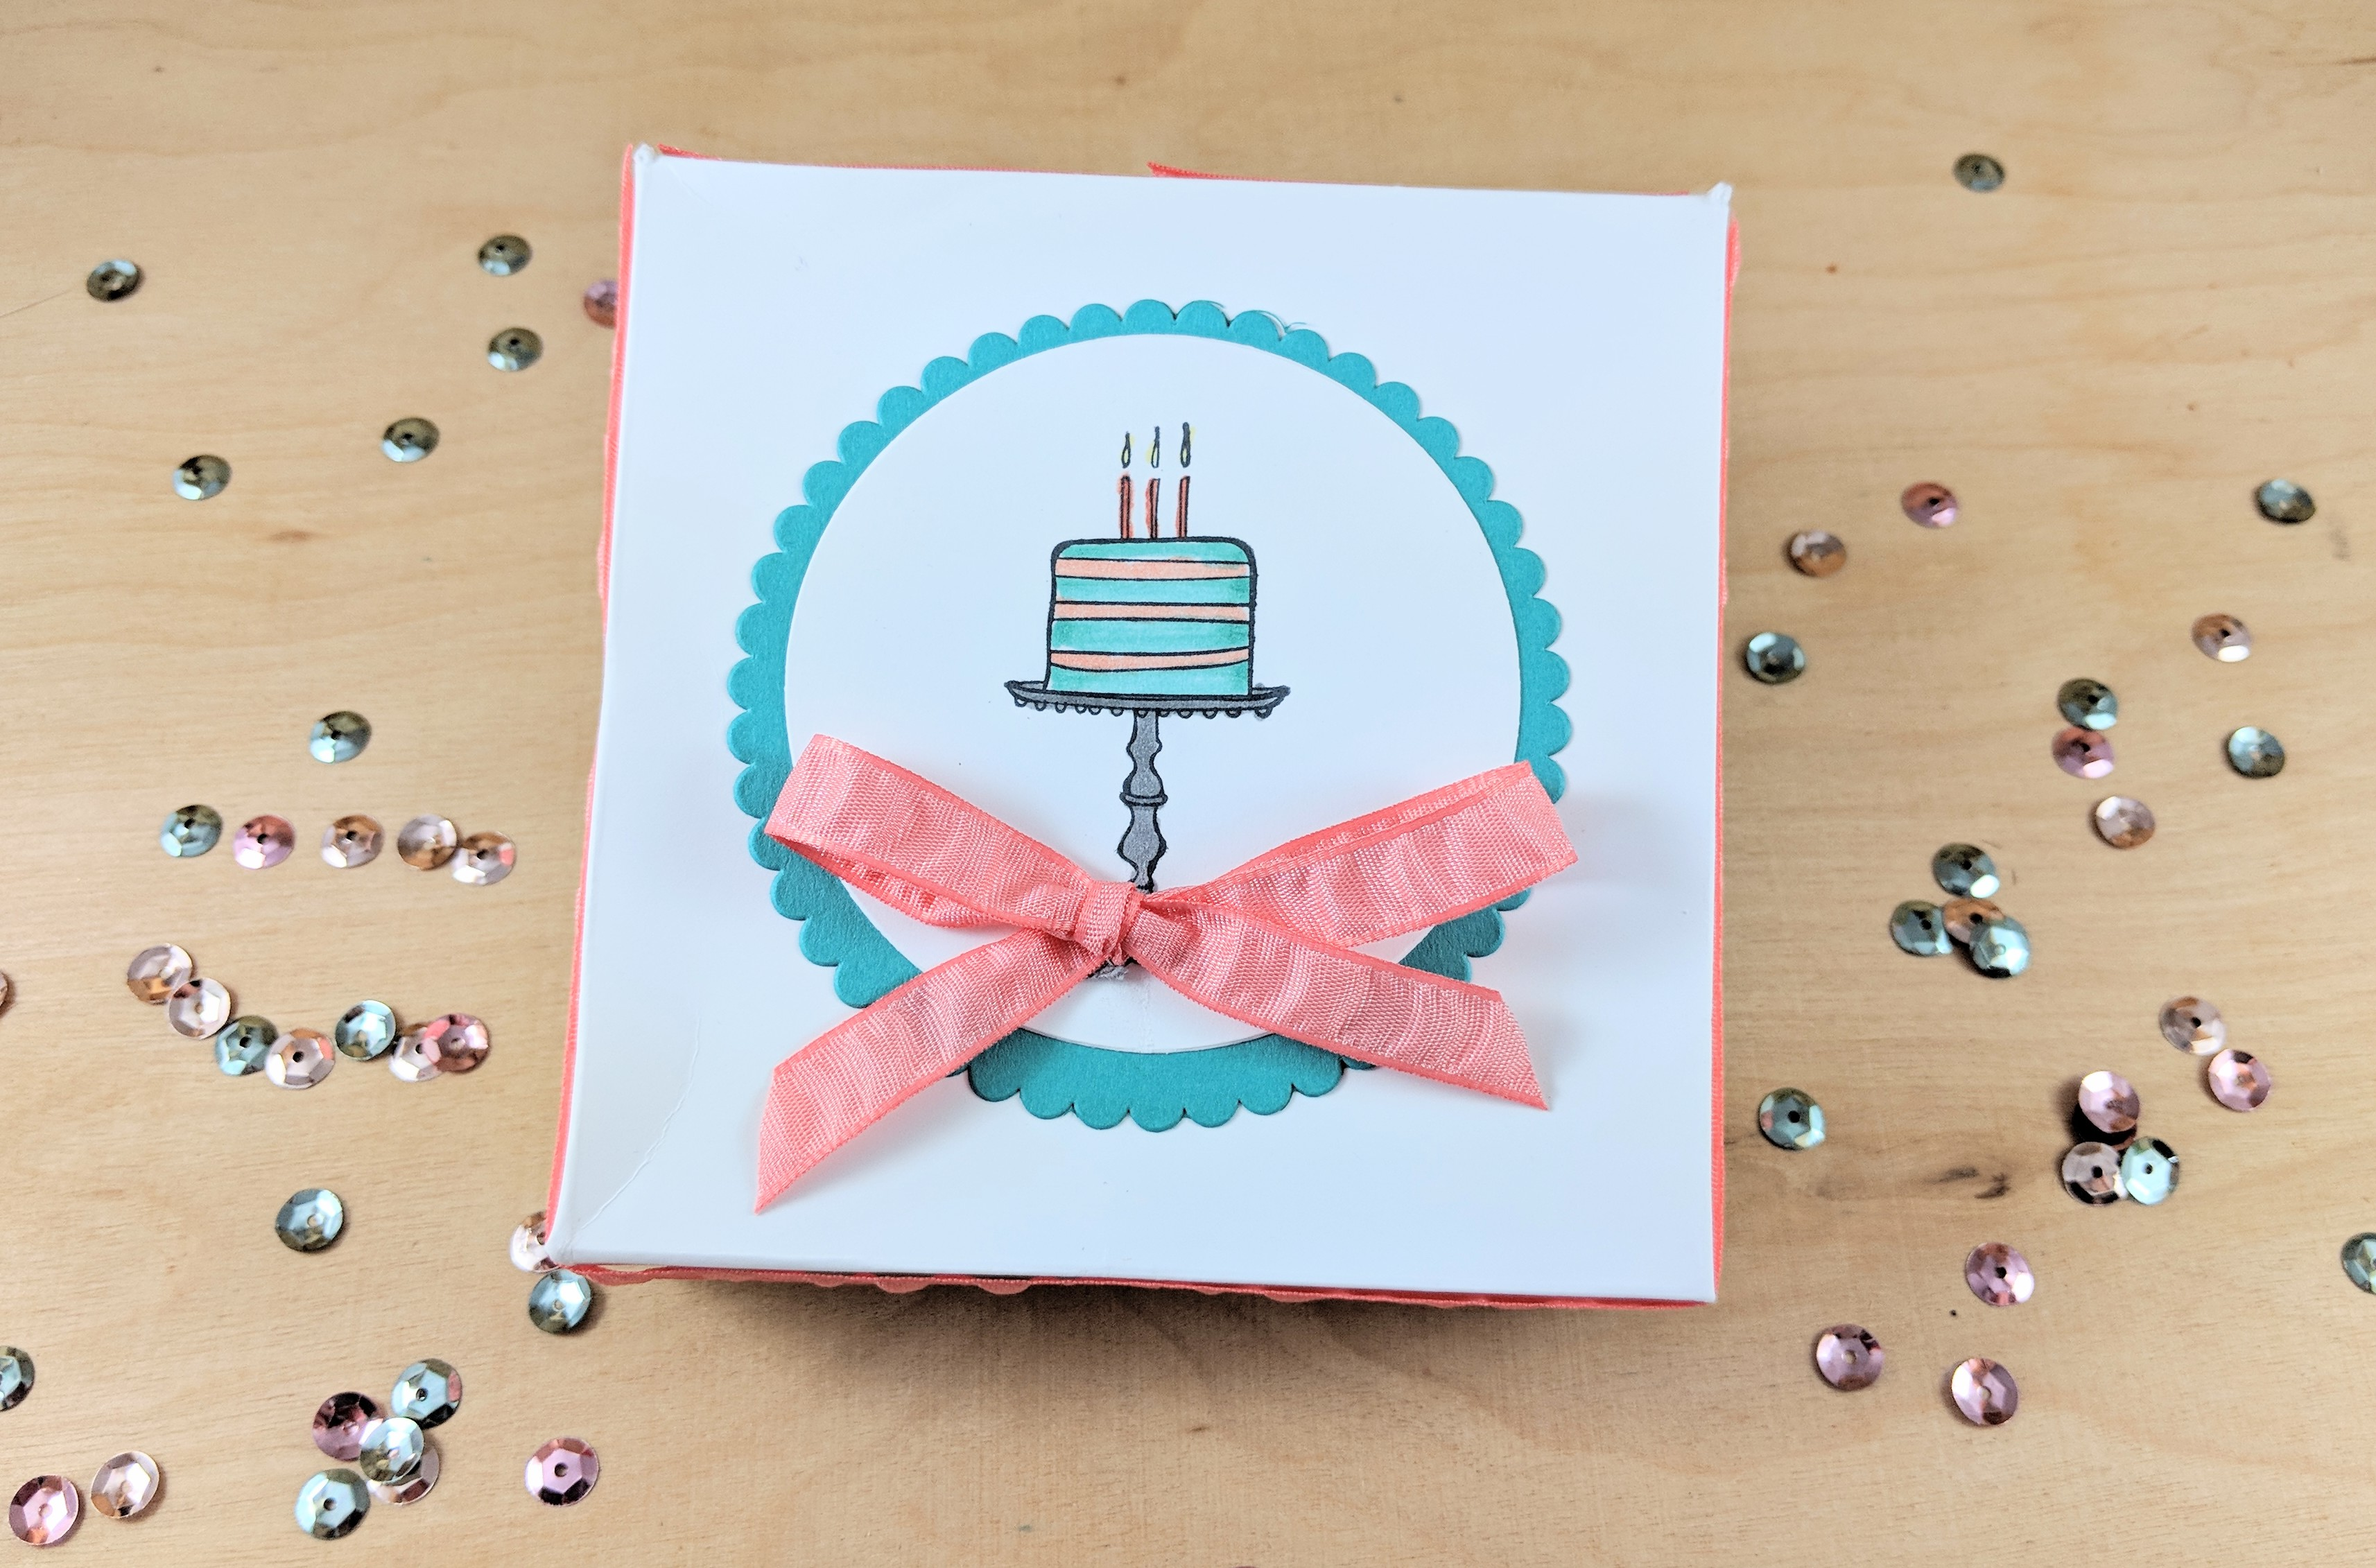 How To Make A Pizza Box Mini Version Laura S Paper Craft Ideas